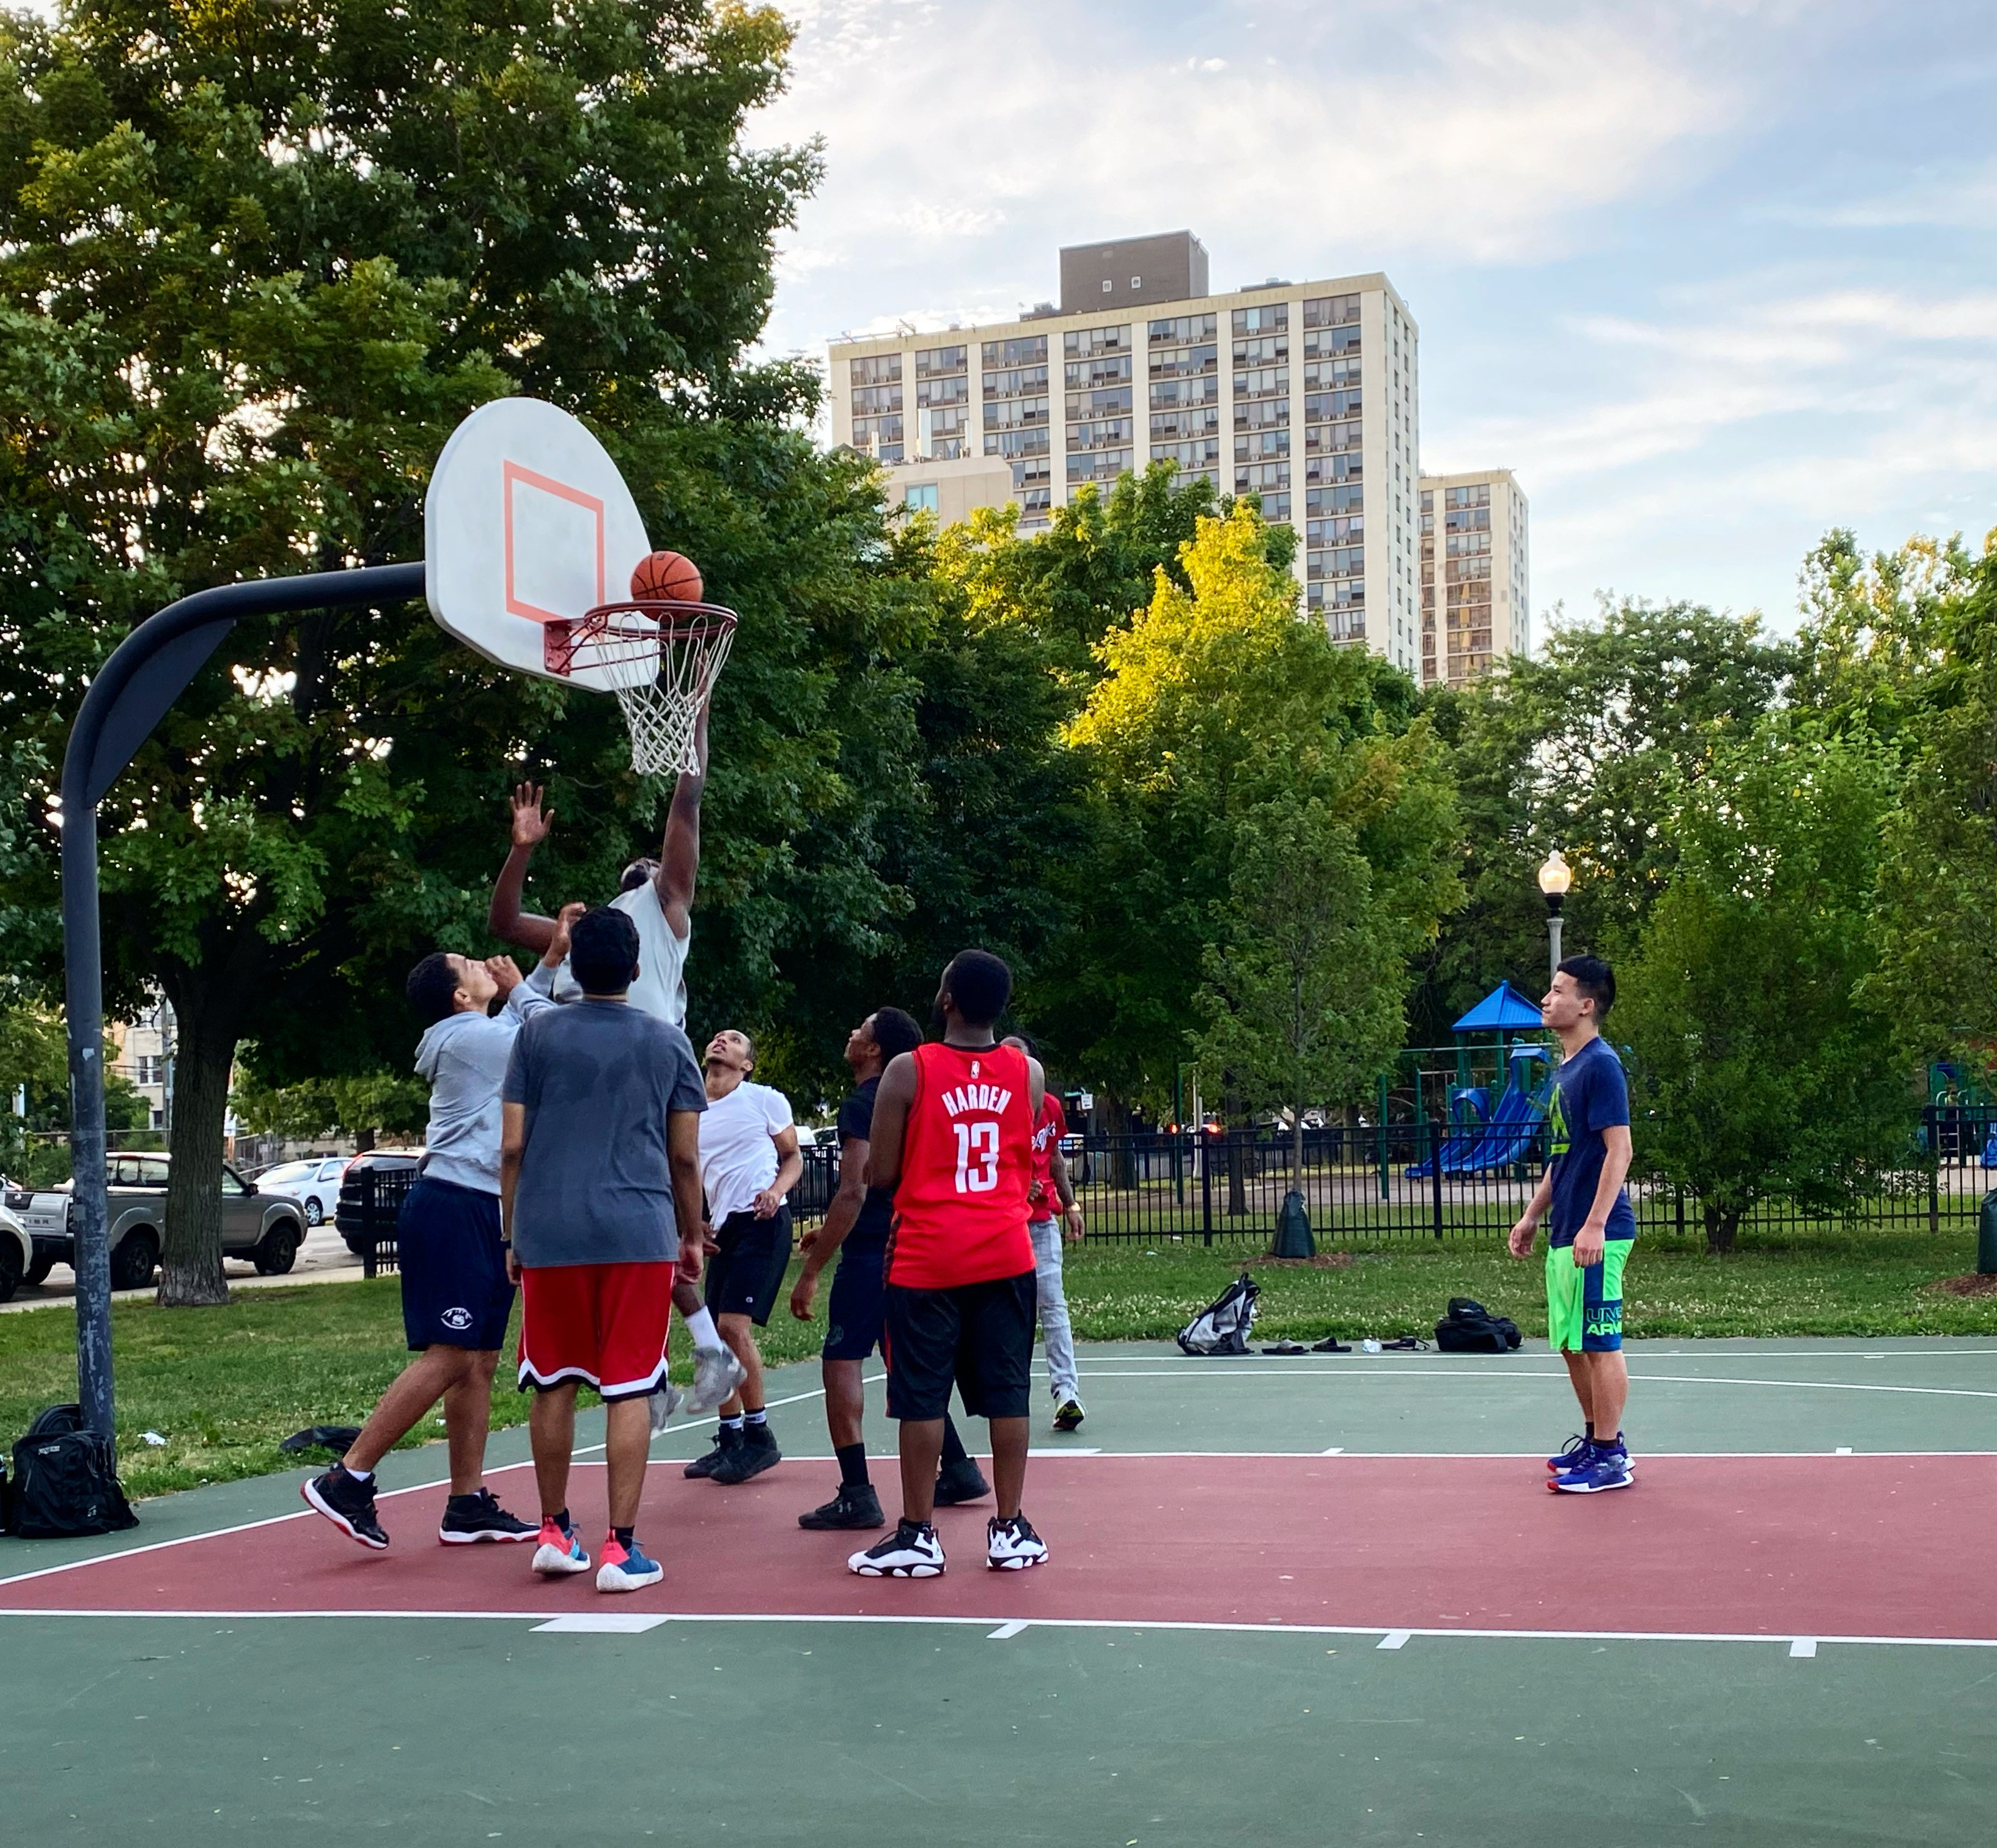 A Case Of Disappearing Hoops In Gentrifying Neighborhoods Feature Chicago Reader